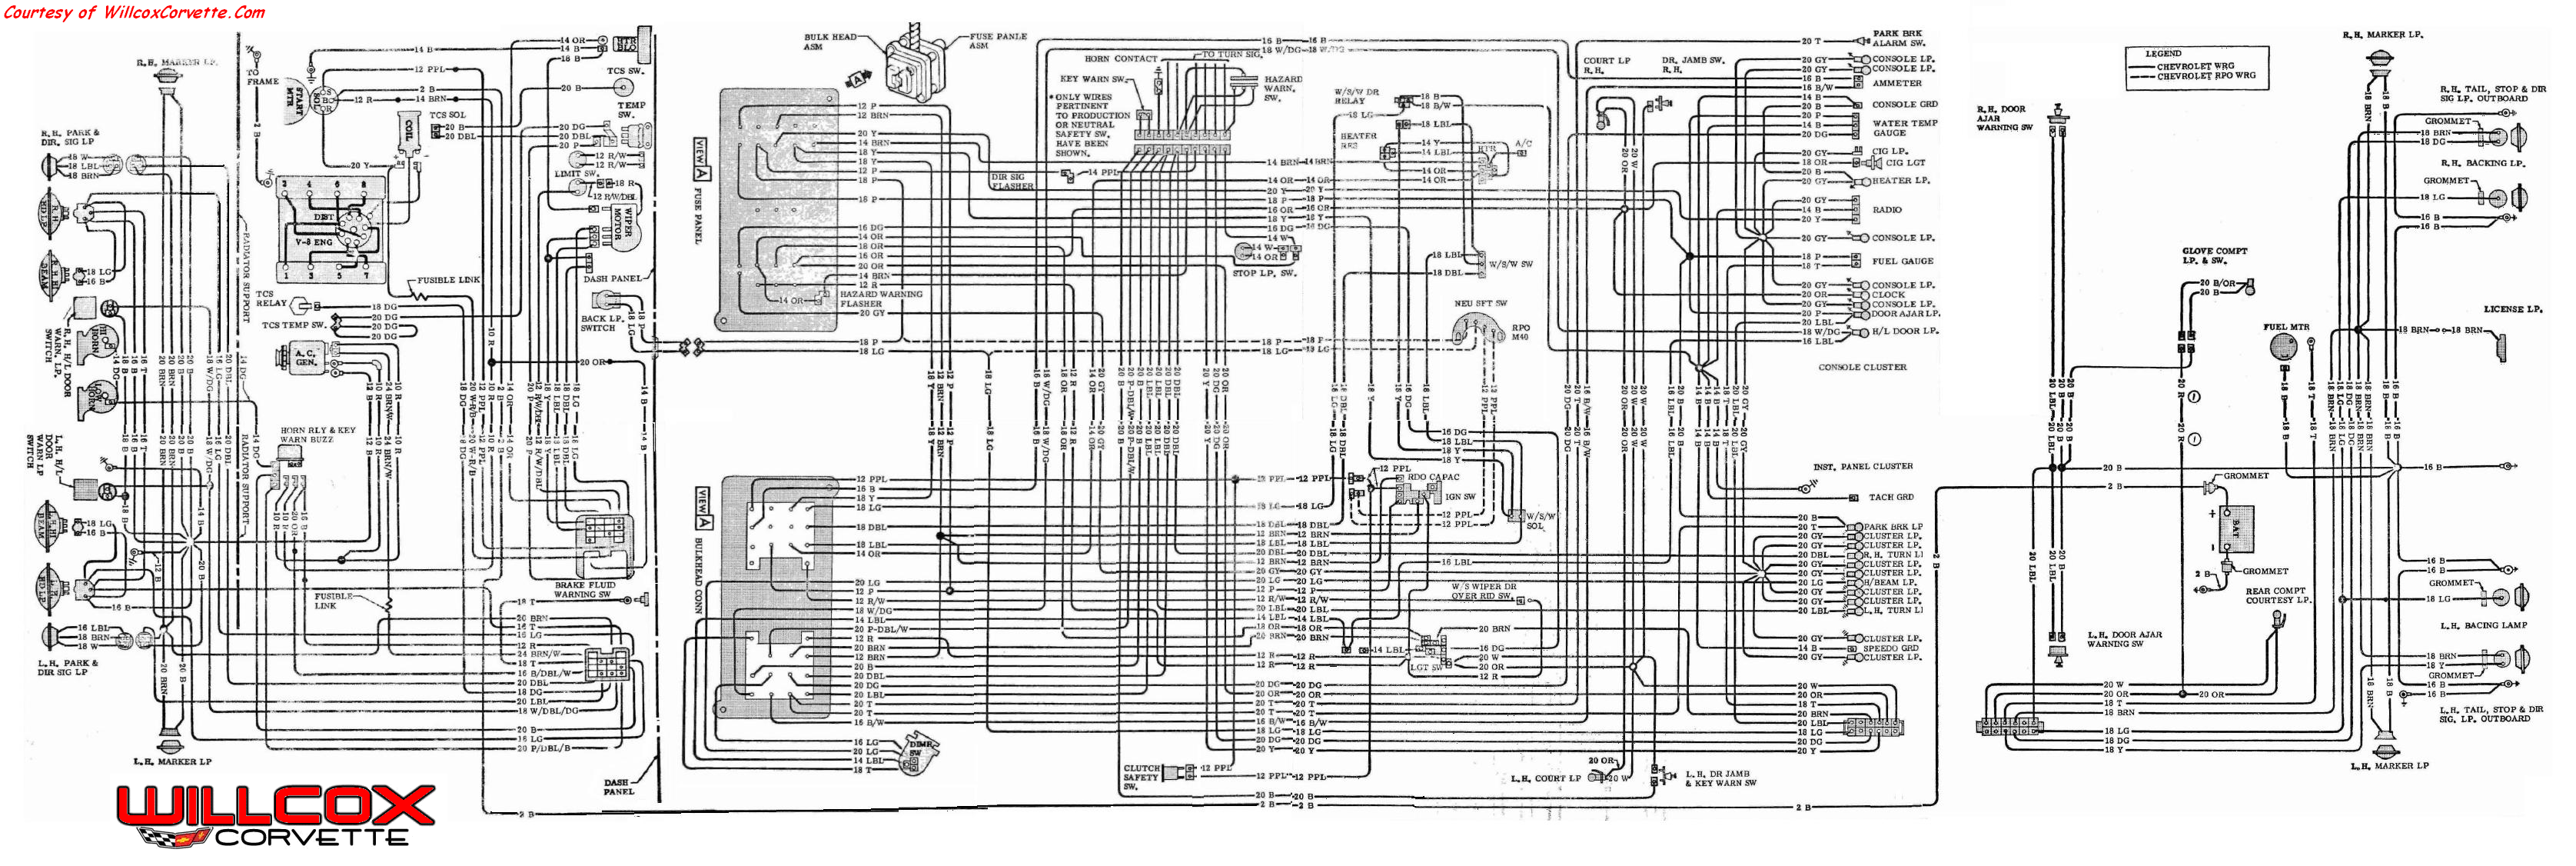 Sm besides Chassis Wiring Diagram For The Chevrolet Corvette furthermore Classic Car Mechanical Fuel Pump A F B B D Be E likewise Corvette Wire Schematic Tracer besides Chevrolet Camaro. on 1962 corvette wiring diagram